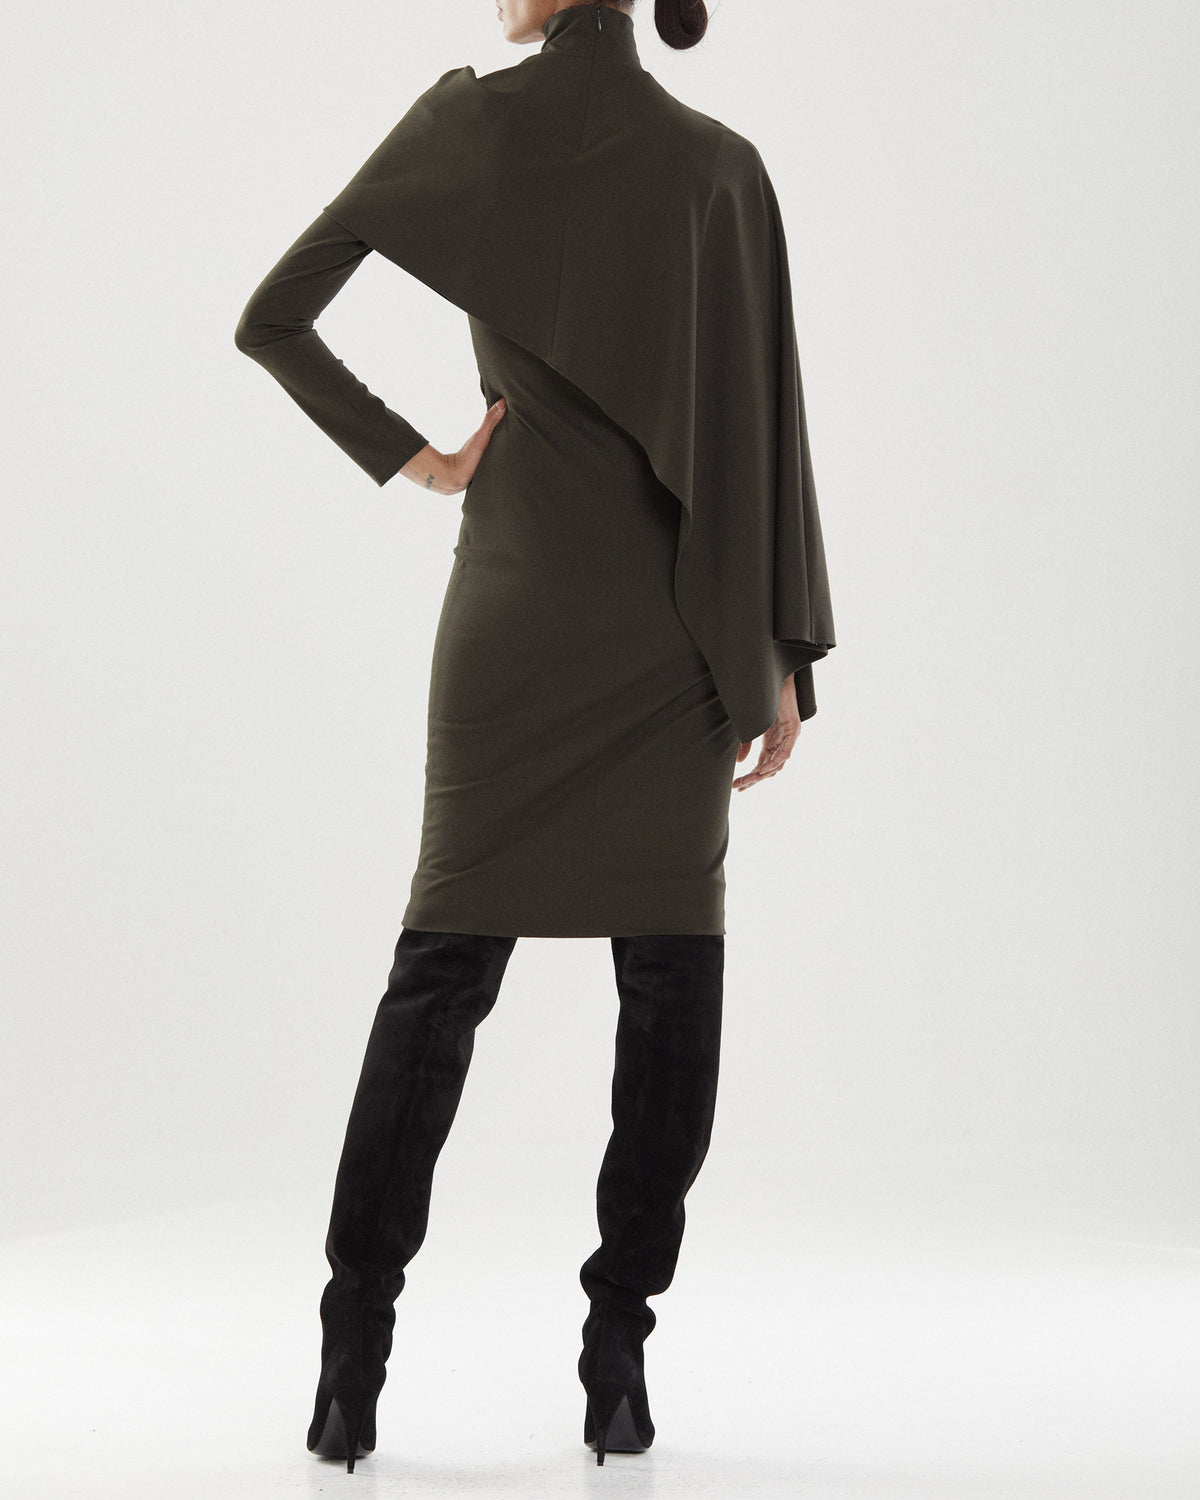 Layla Micro Knit Dress